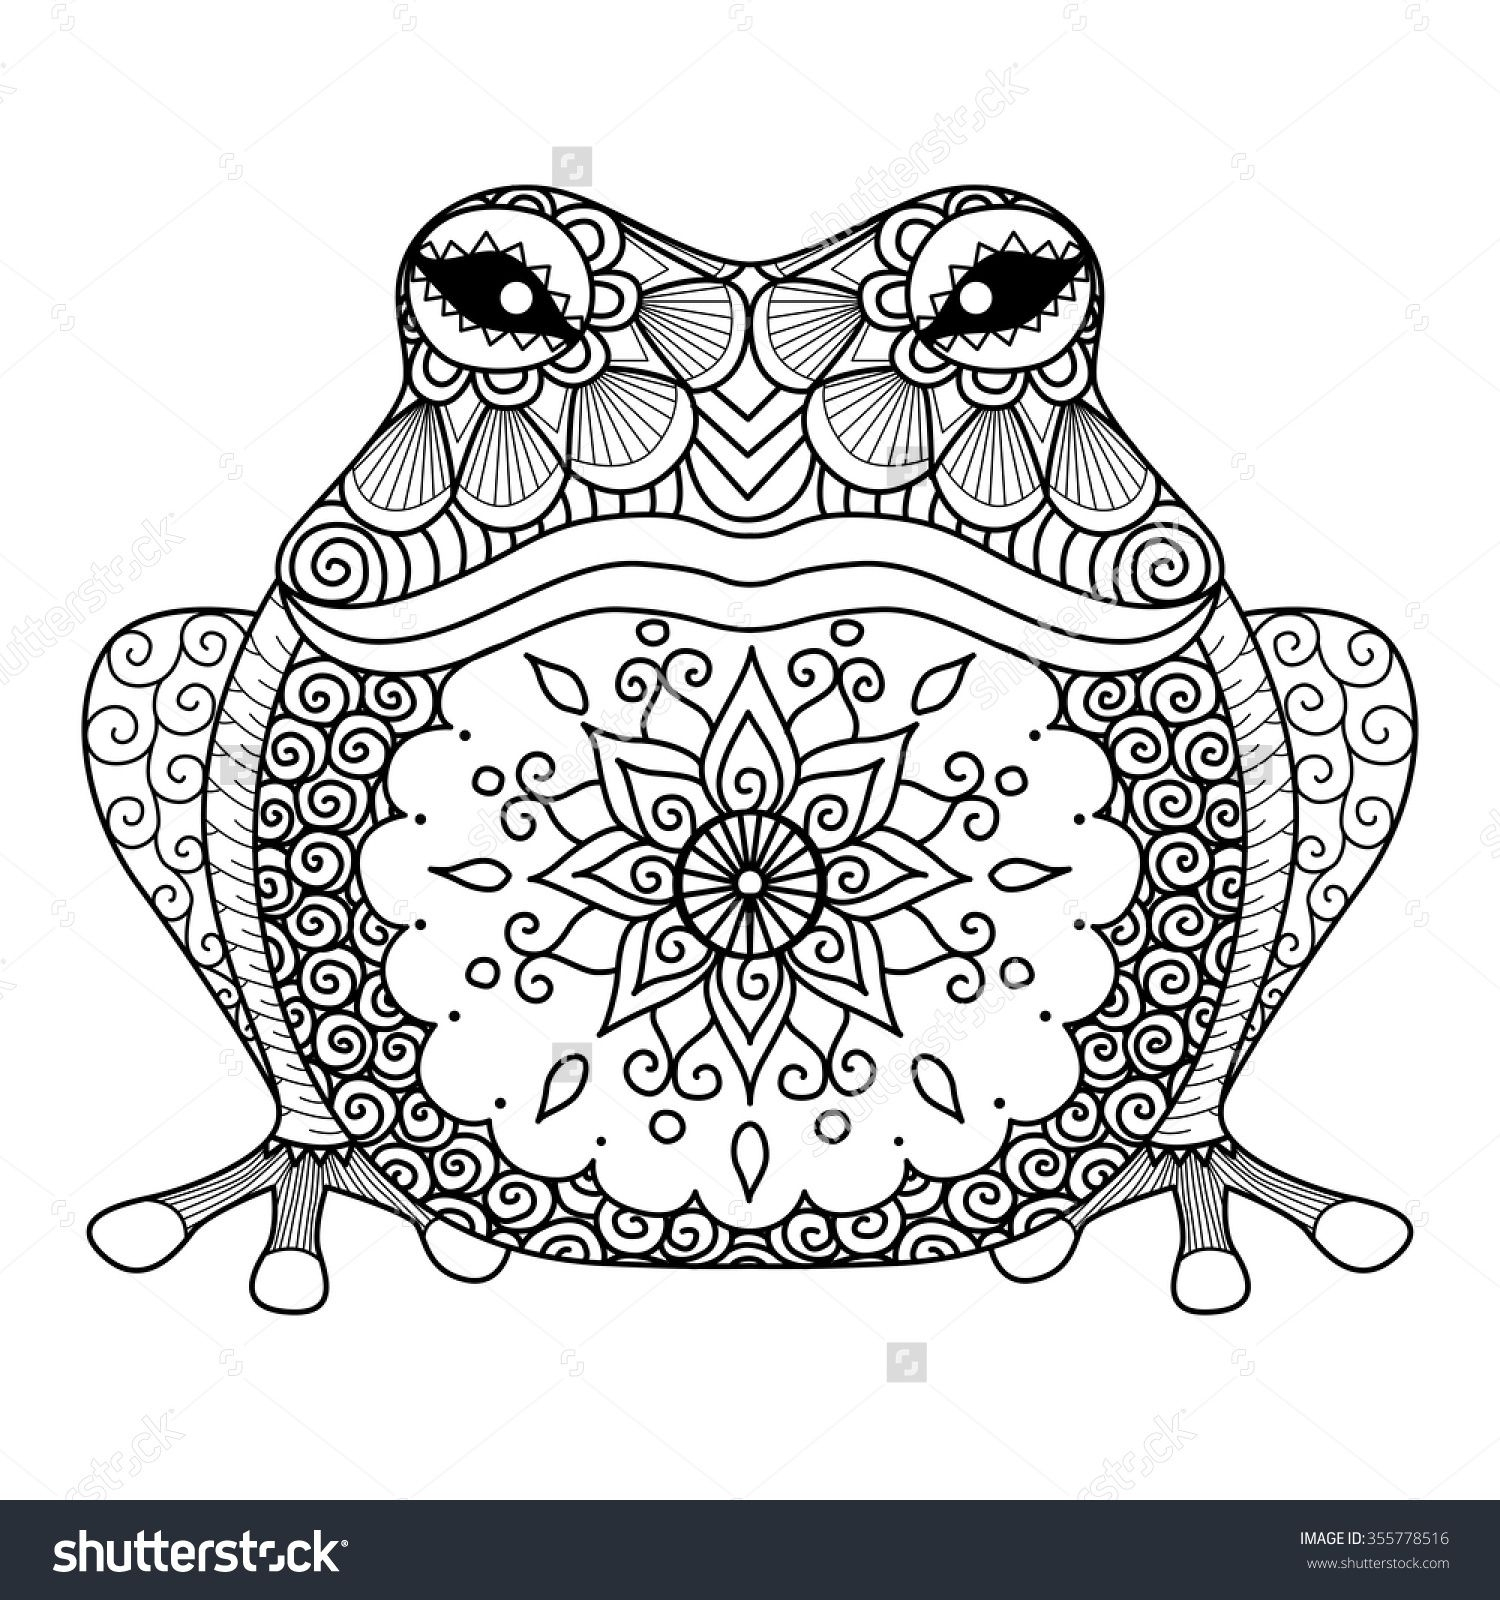 graphic relating to Frog Printable identified as Frog Coloring Website page Frog Coloring Web pages In direction of Print Printable